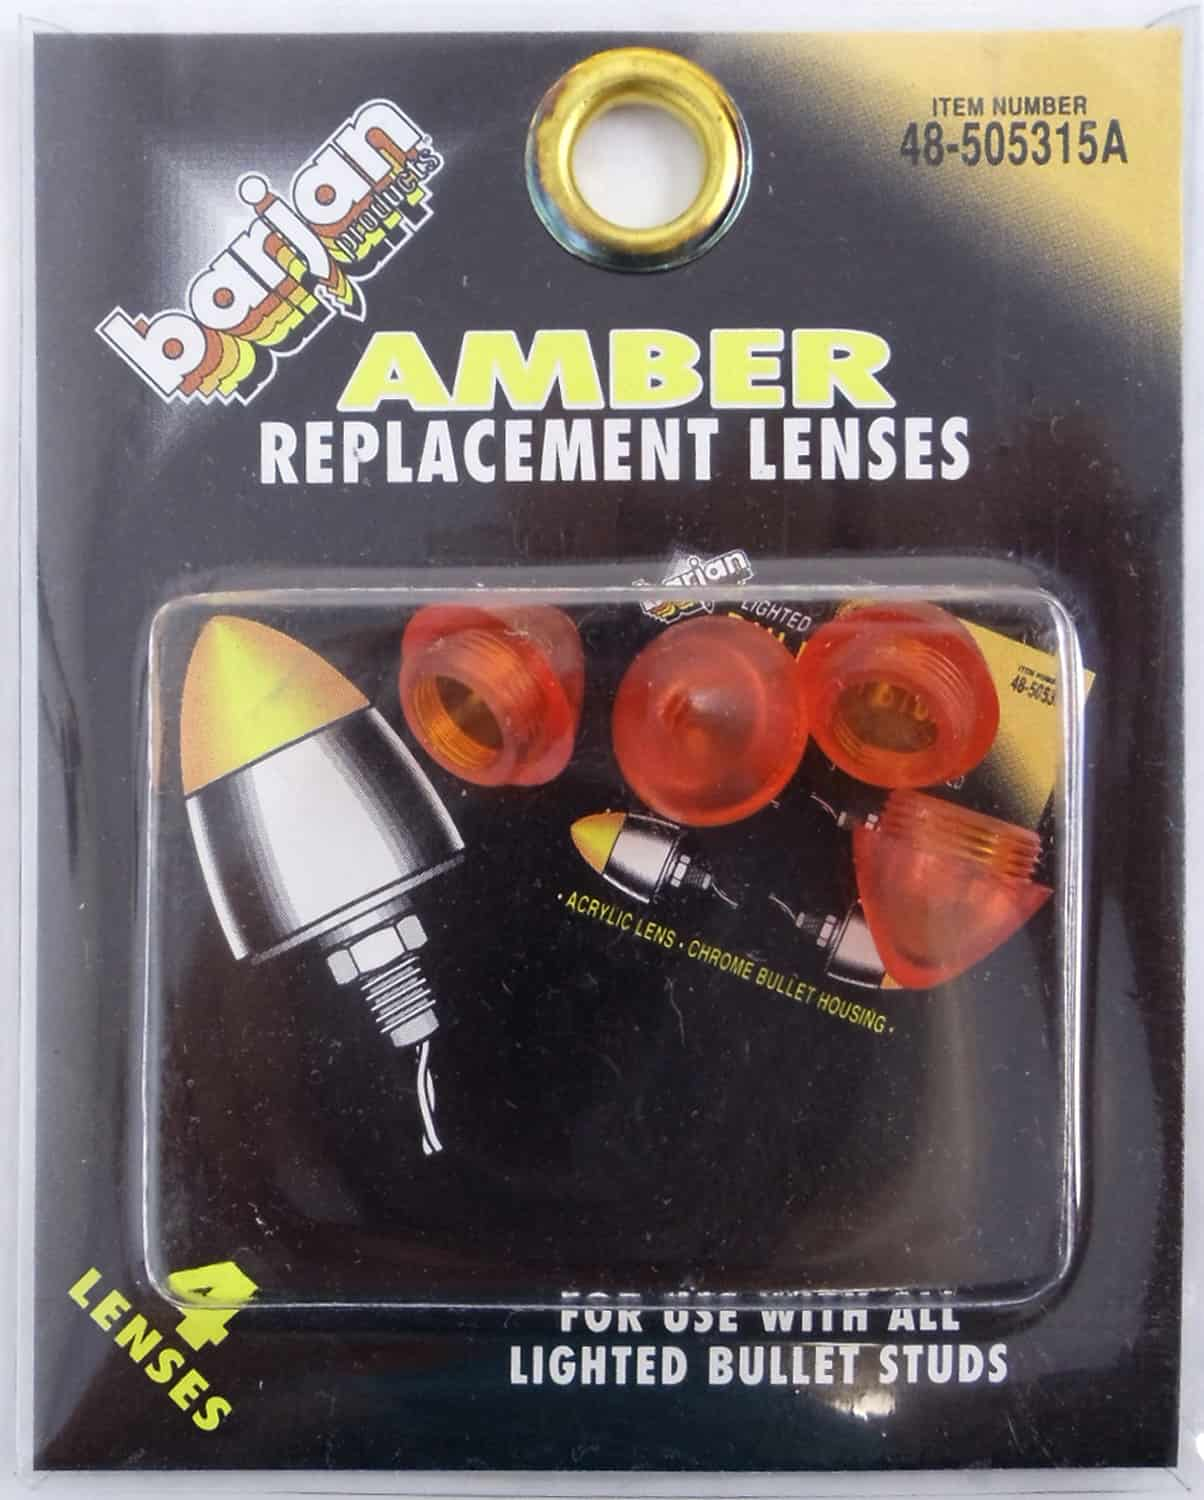 048505315A - Amber Replacement Lenses